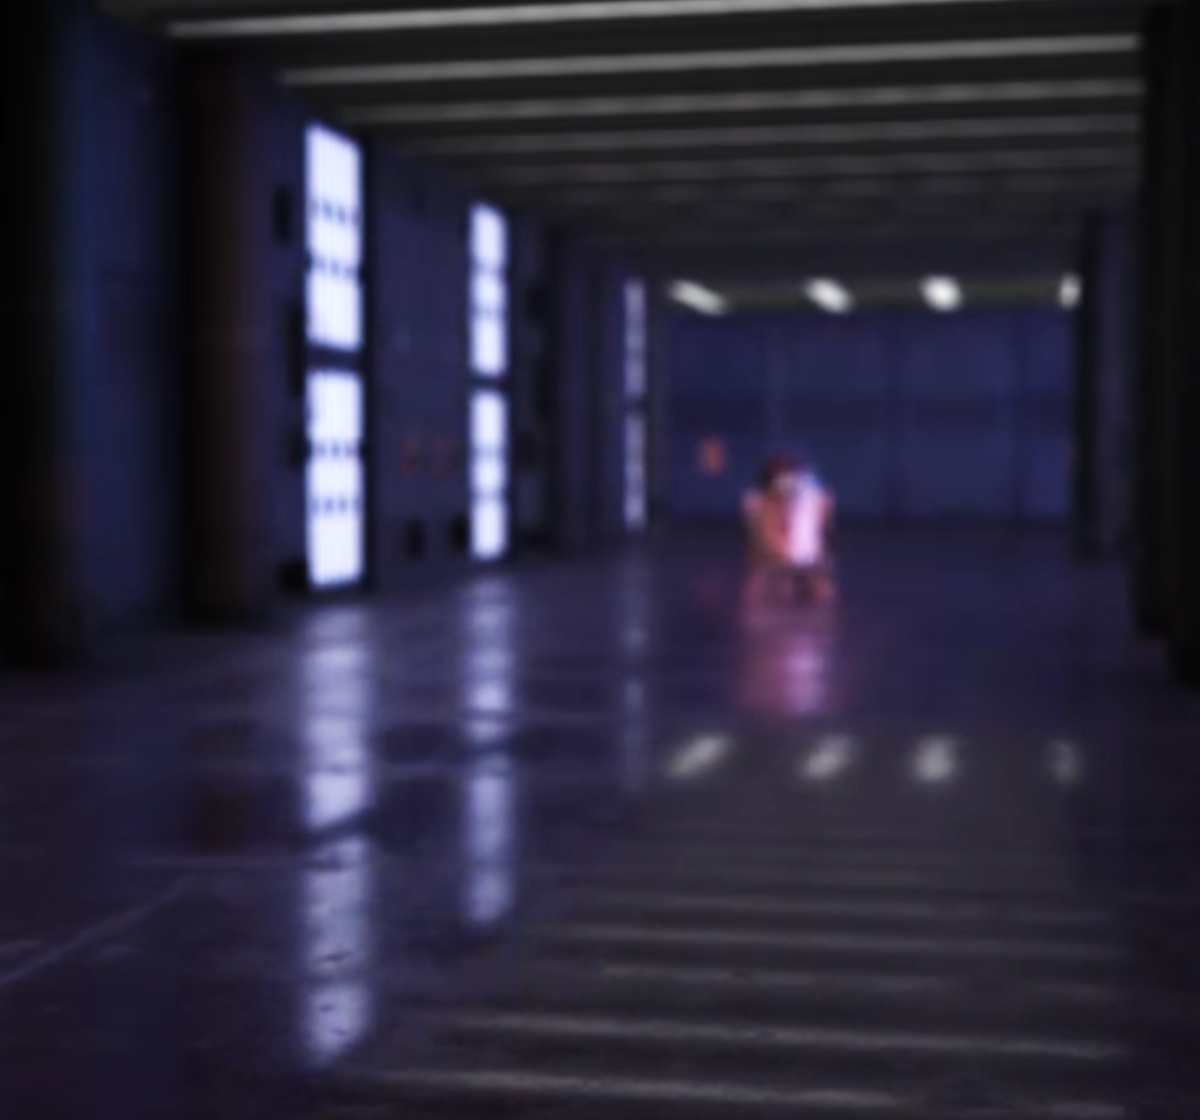 R2D2 blurry in the distance of long space corridor